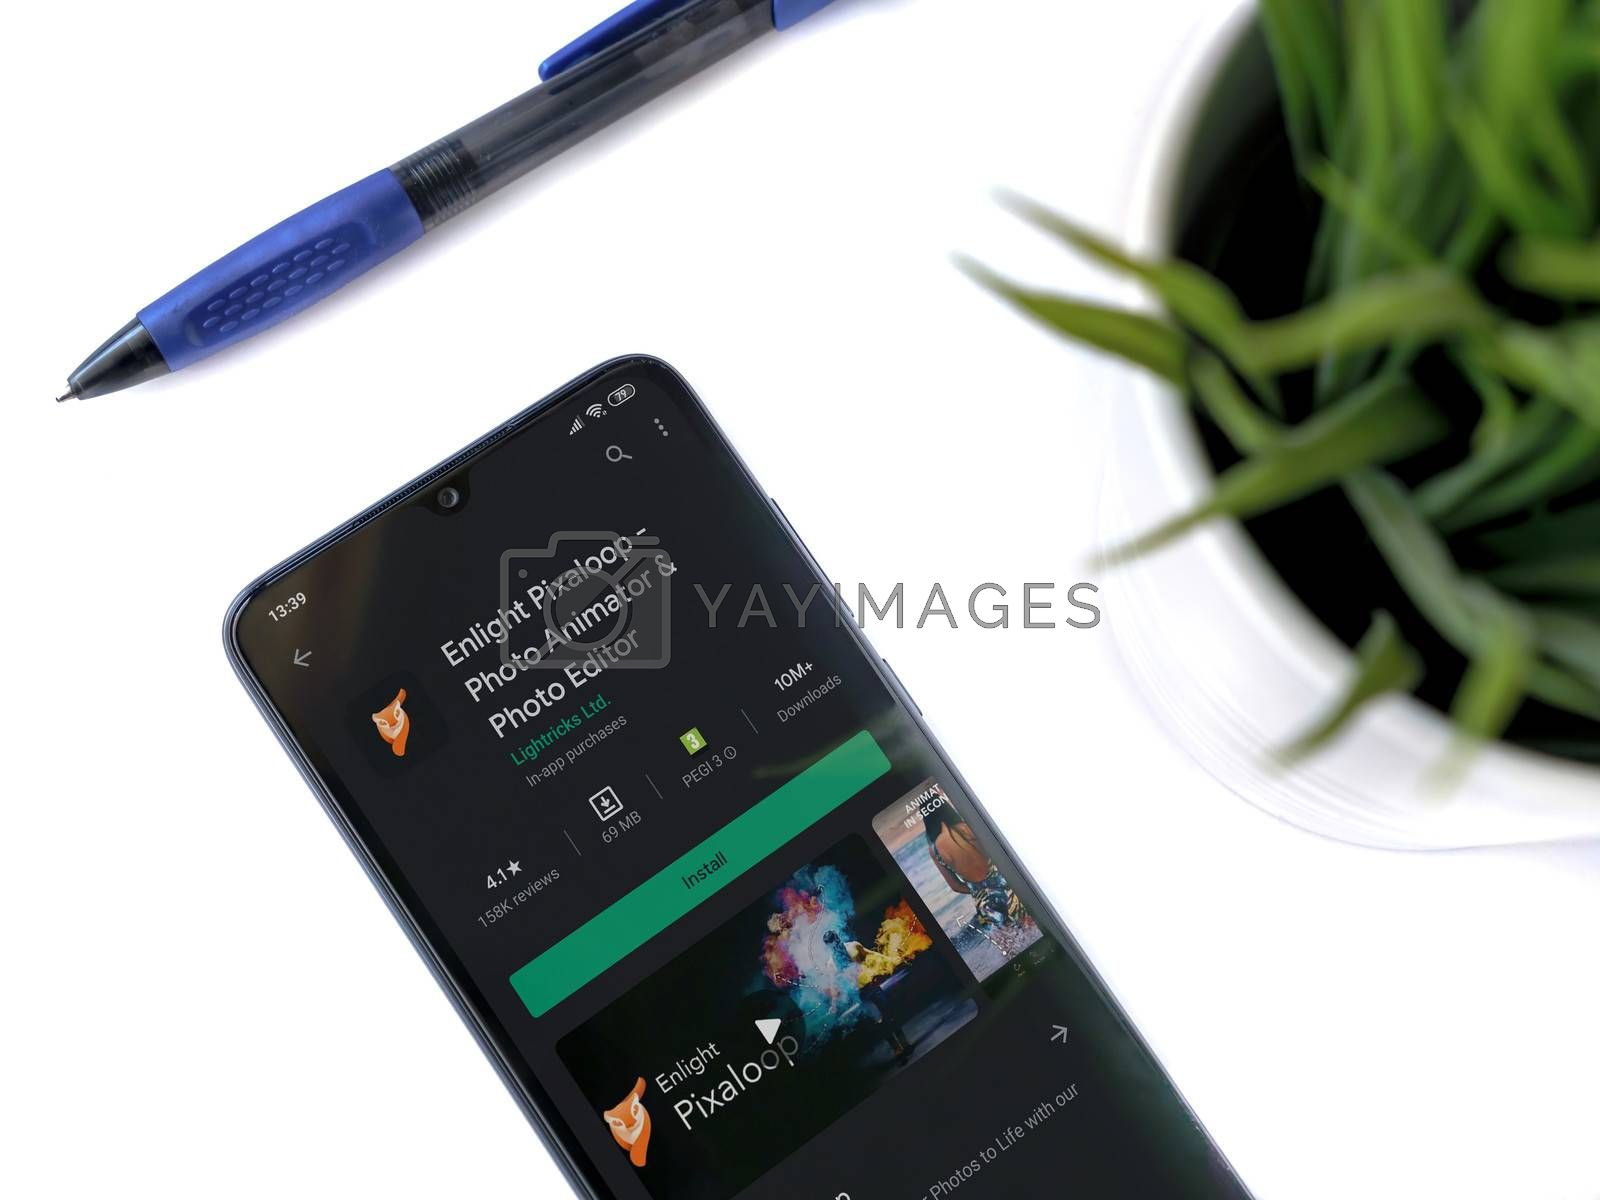 Lod, Israel - July 8, 2020: Modern minimalist office workspace with black mobile smartphone with Enlight Pixaloop app play store page on a white background. Close up top view flat lay.